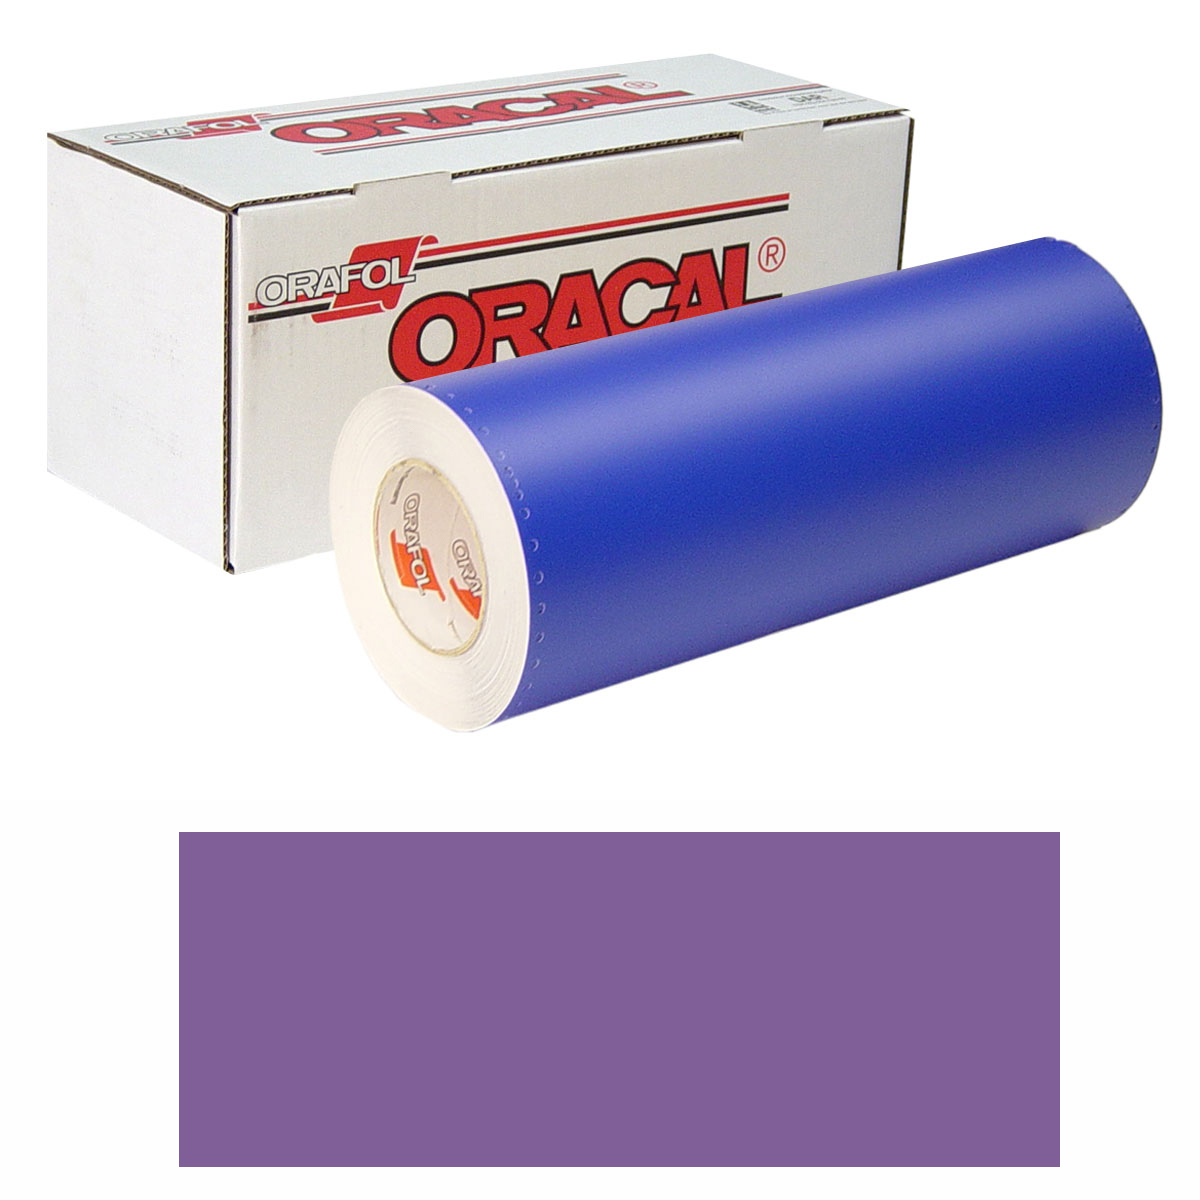 ORACAL 8300 30in X 50yd 040 Violet